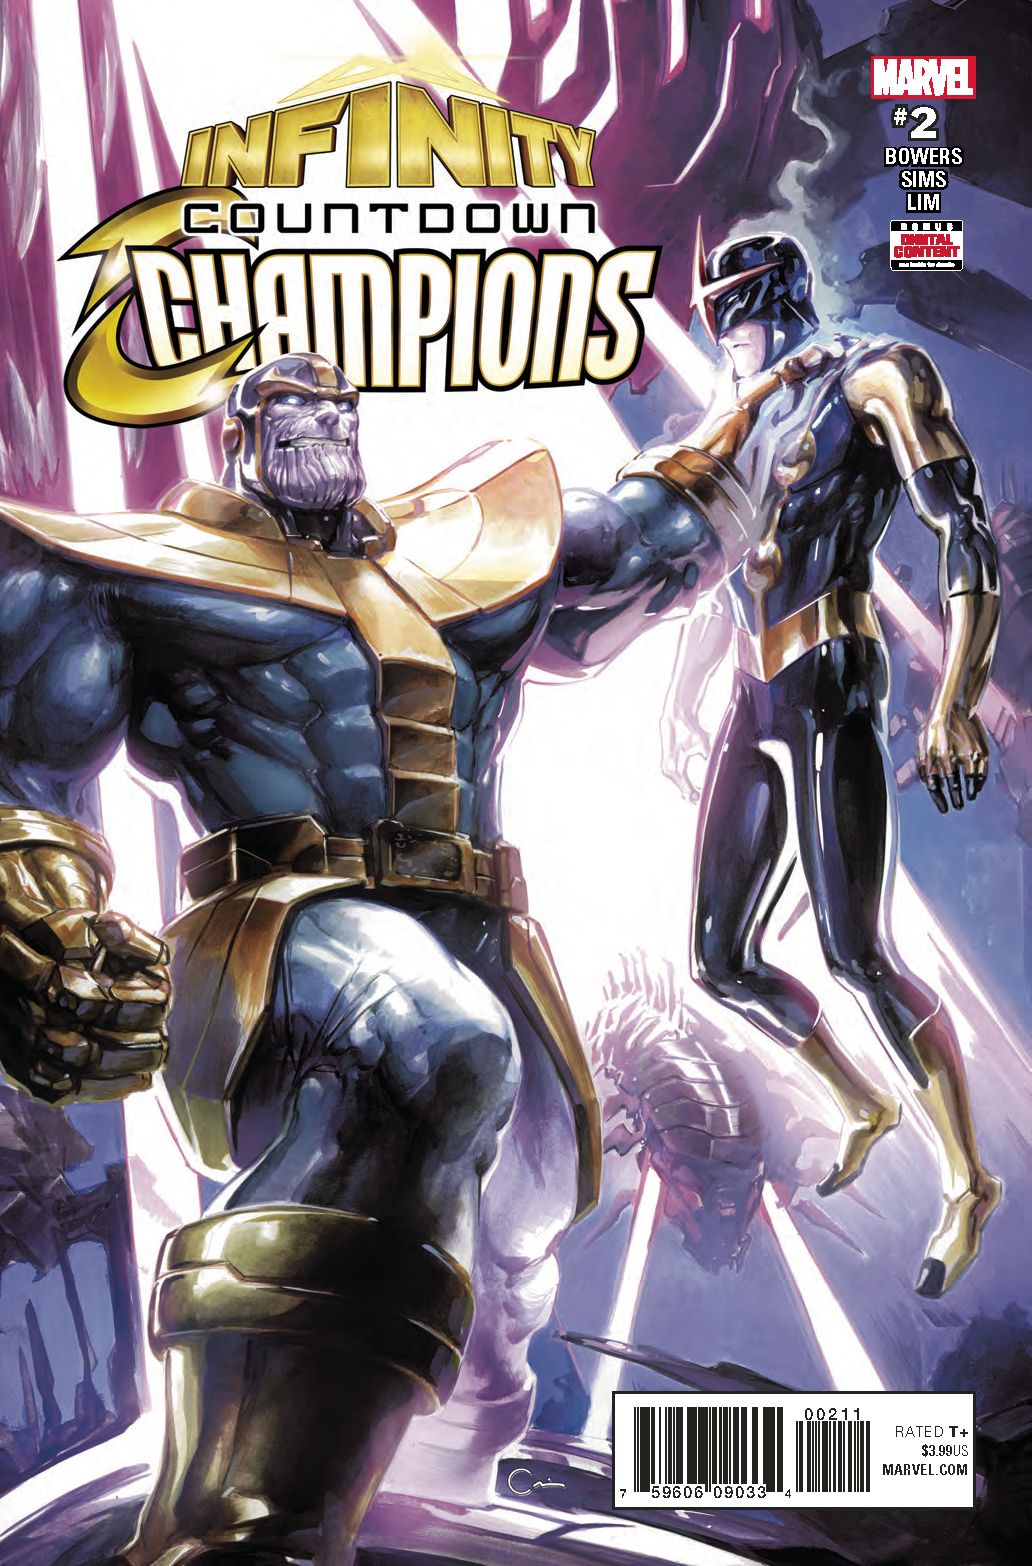 INFINITY COUNTDOWN CHAMPIONS #2 (OF 2)